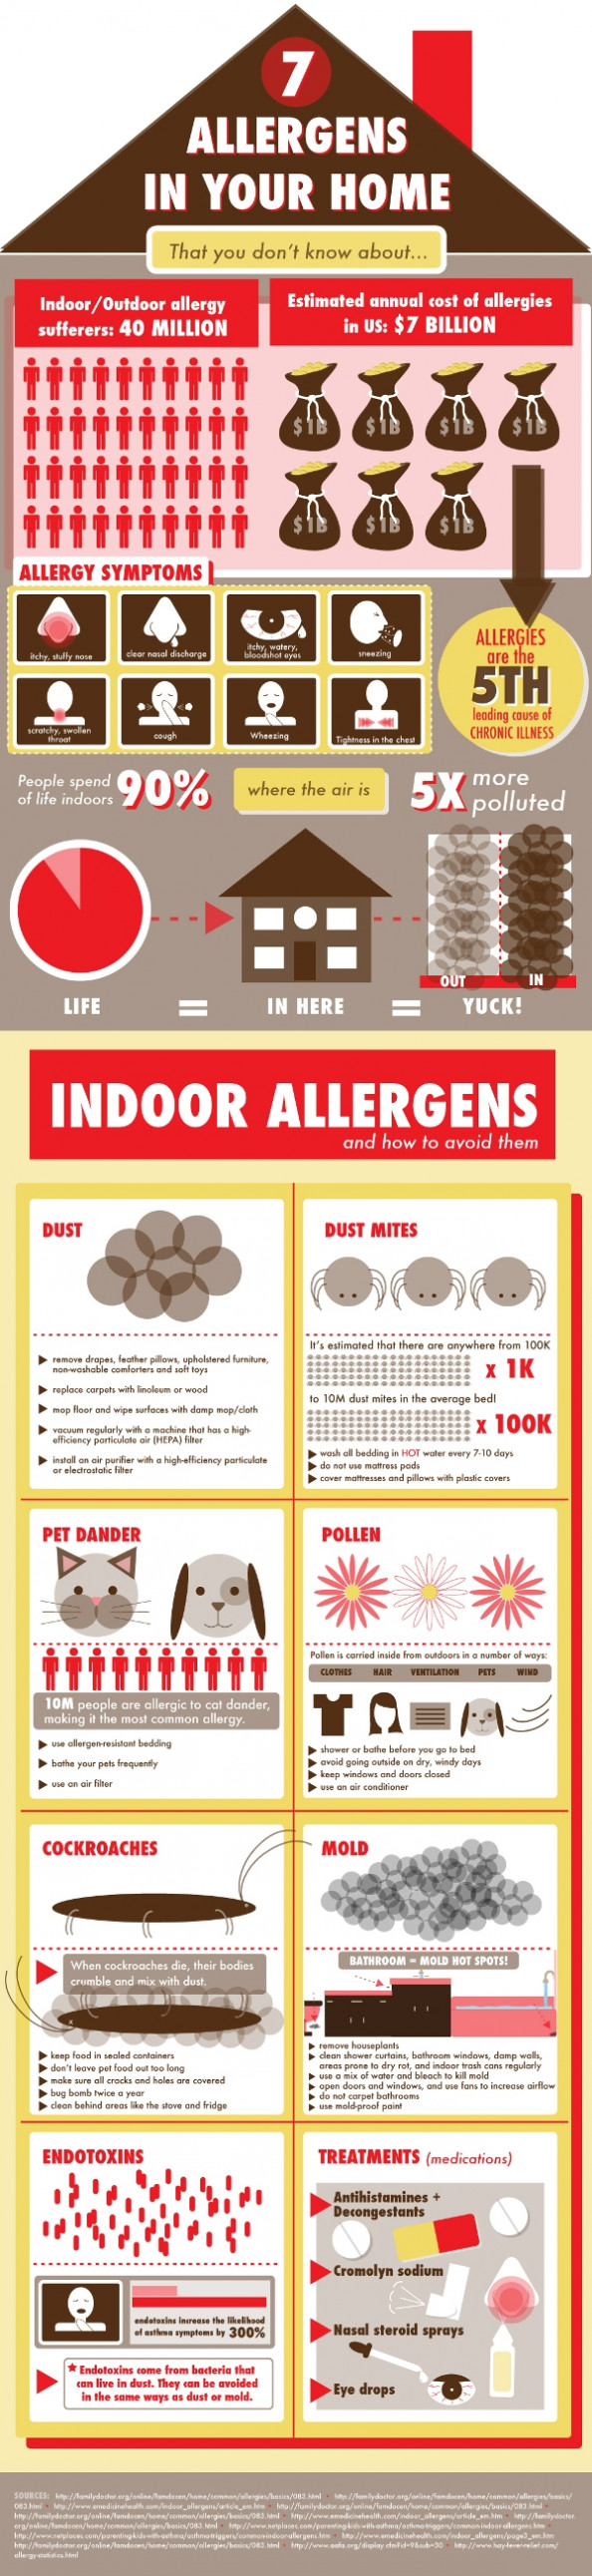 7 Allergens in Your Home: That You Don&#039;t Know About  Infographic